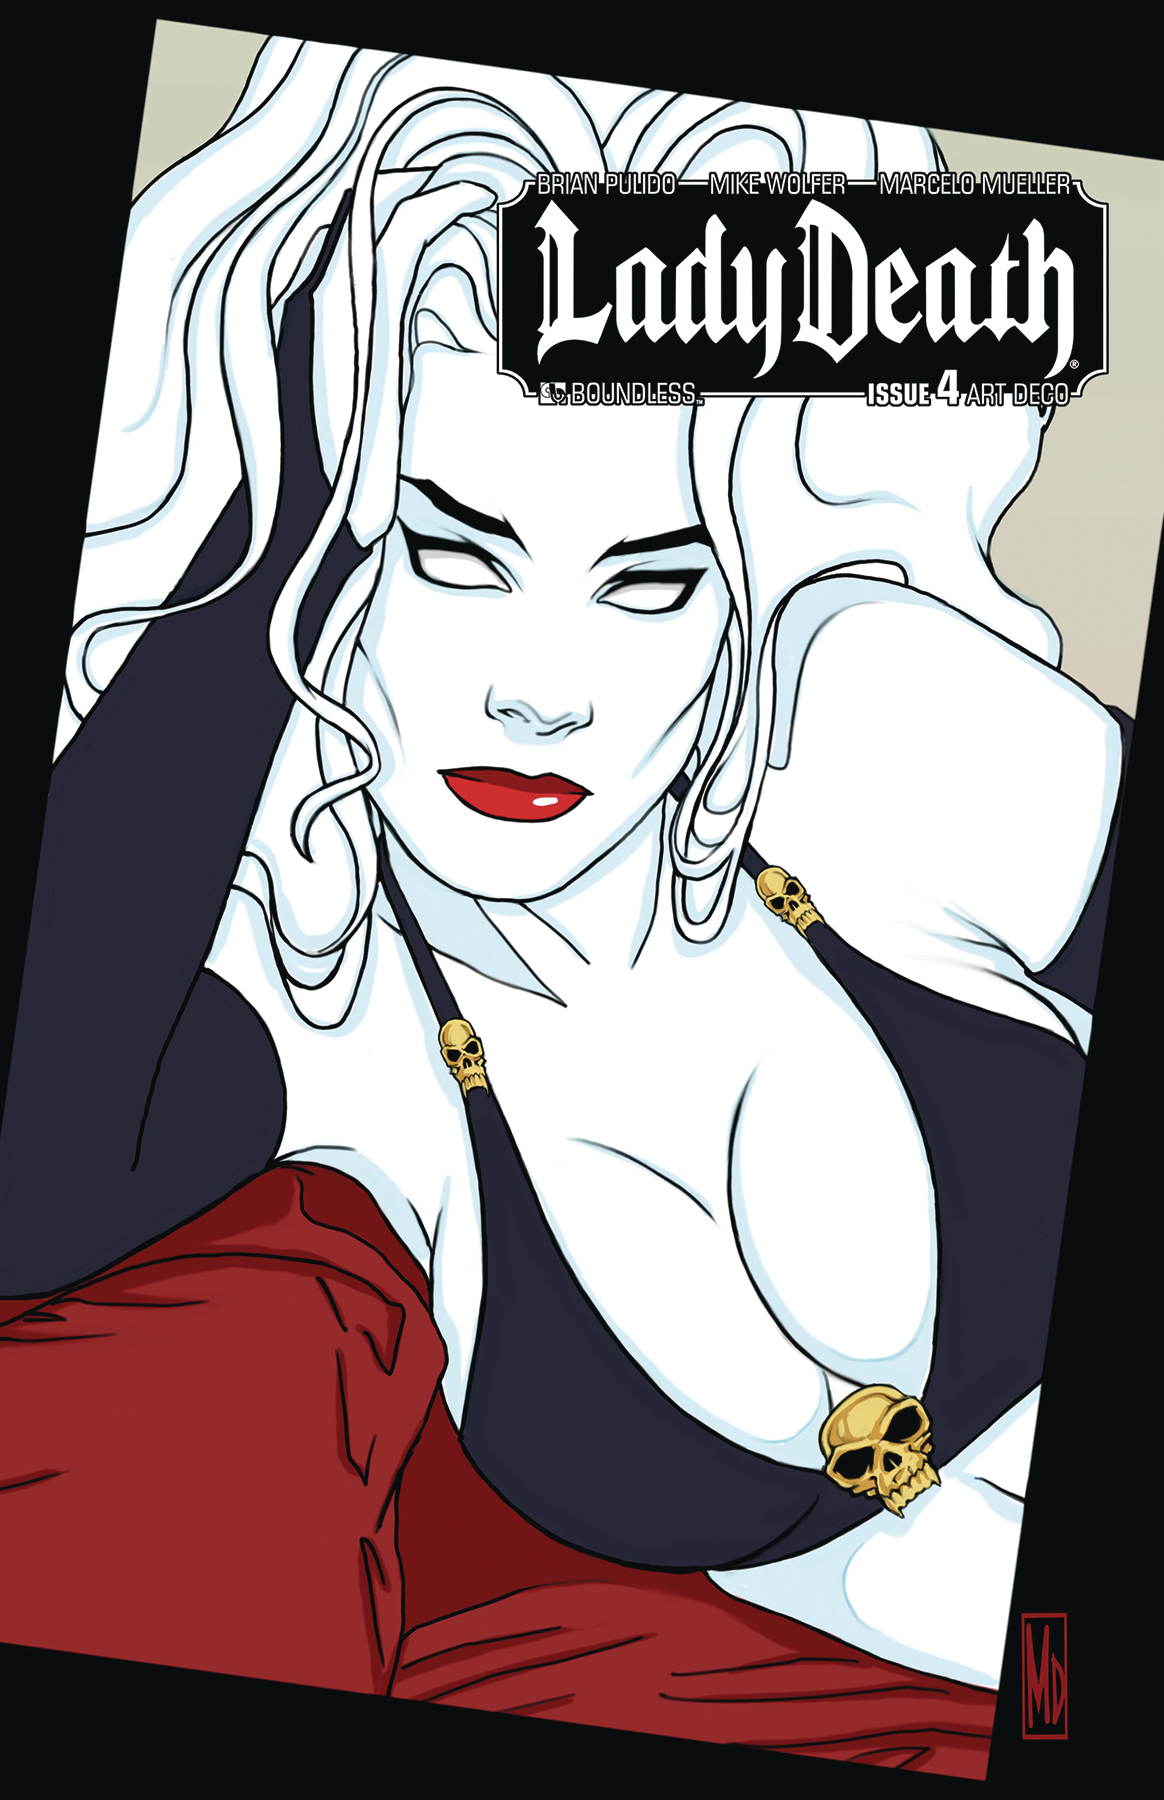 LADY DEATH #4 ART DECO VARIANT